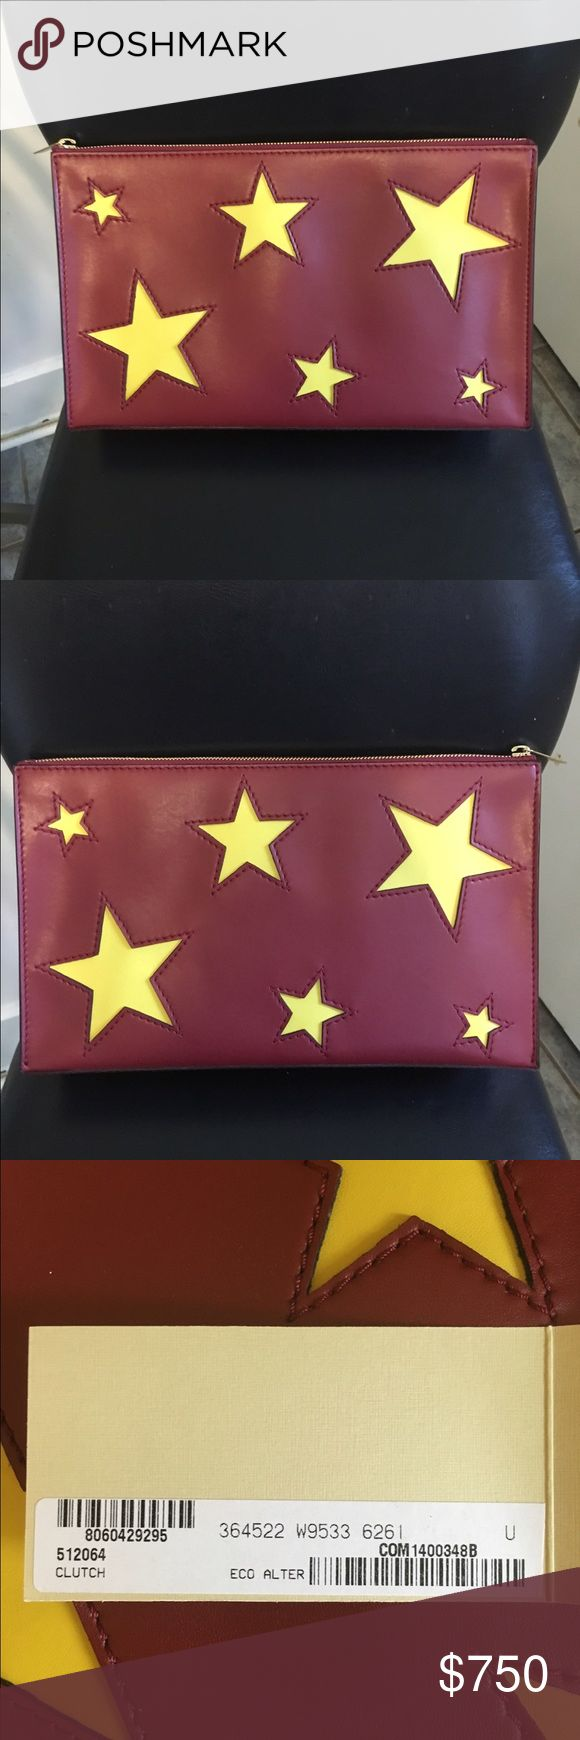 Stella McCartney Star Clutch💥FLASH SALE💥 Authentic Runway clutch by Stella McCartney. This clutch is amazing! This is not your every day clutch. Very large and roomy. RARE. Brand new, never carried. Comes with original dust bag and tag. If traded TV $900 1st and 3rd pictures are off the Internet to show size reference. Stella McCartney Bags Clutches & Wristlets